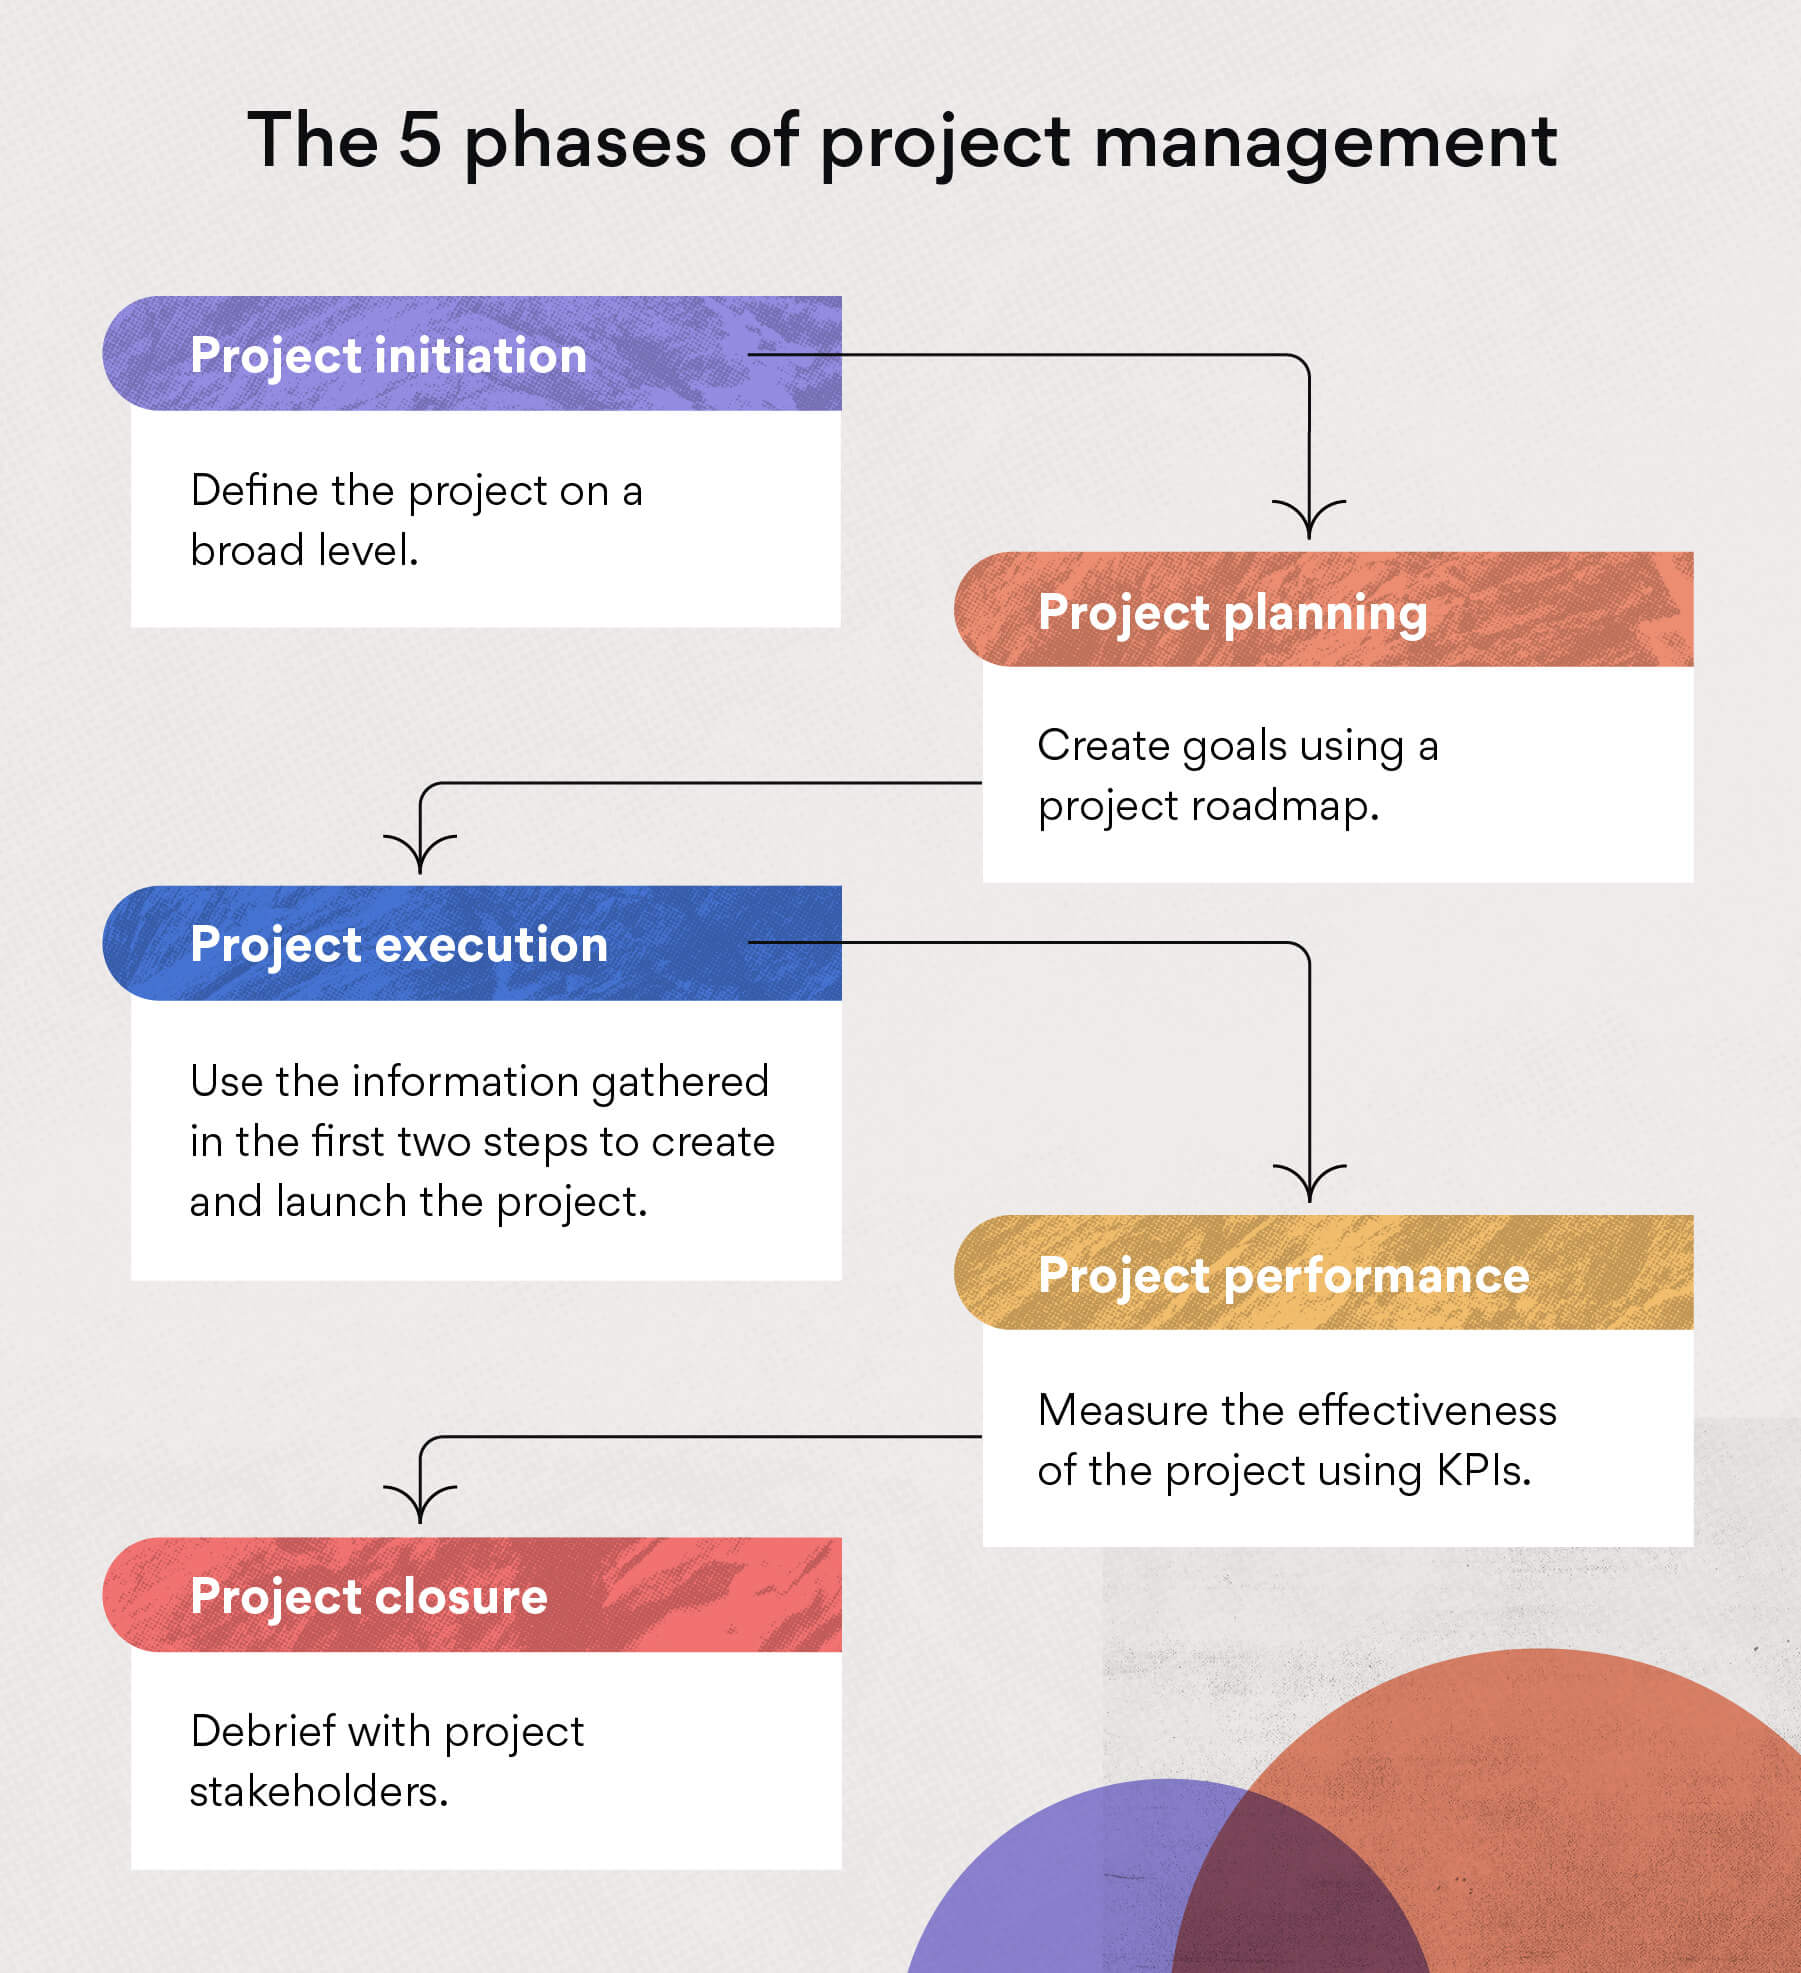 The 5 phases of project management